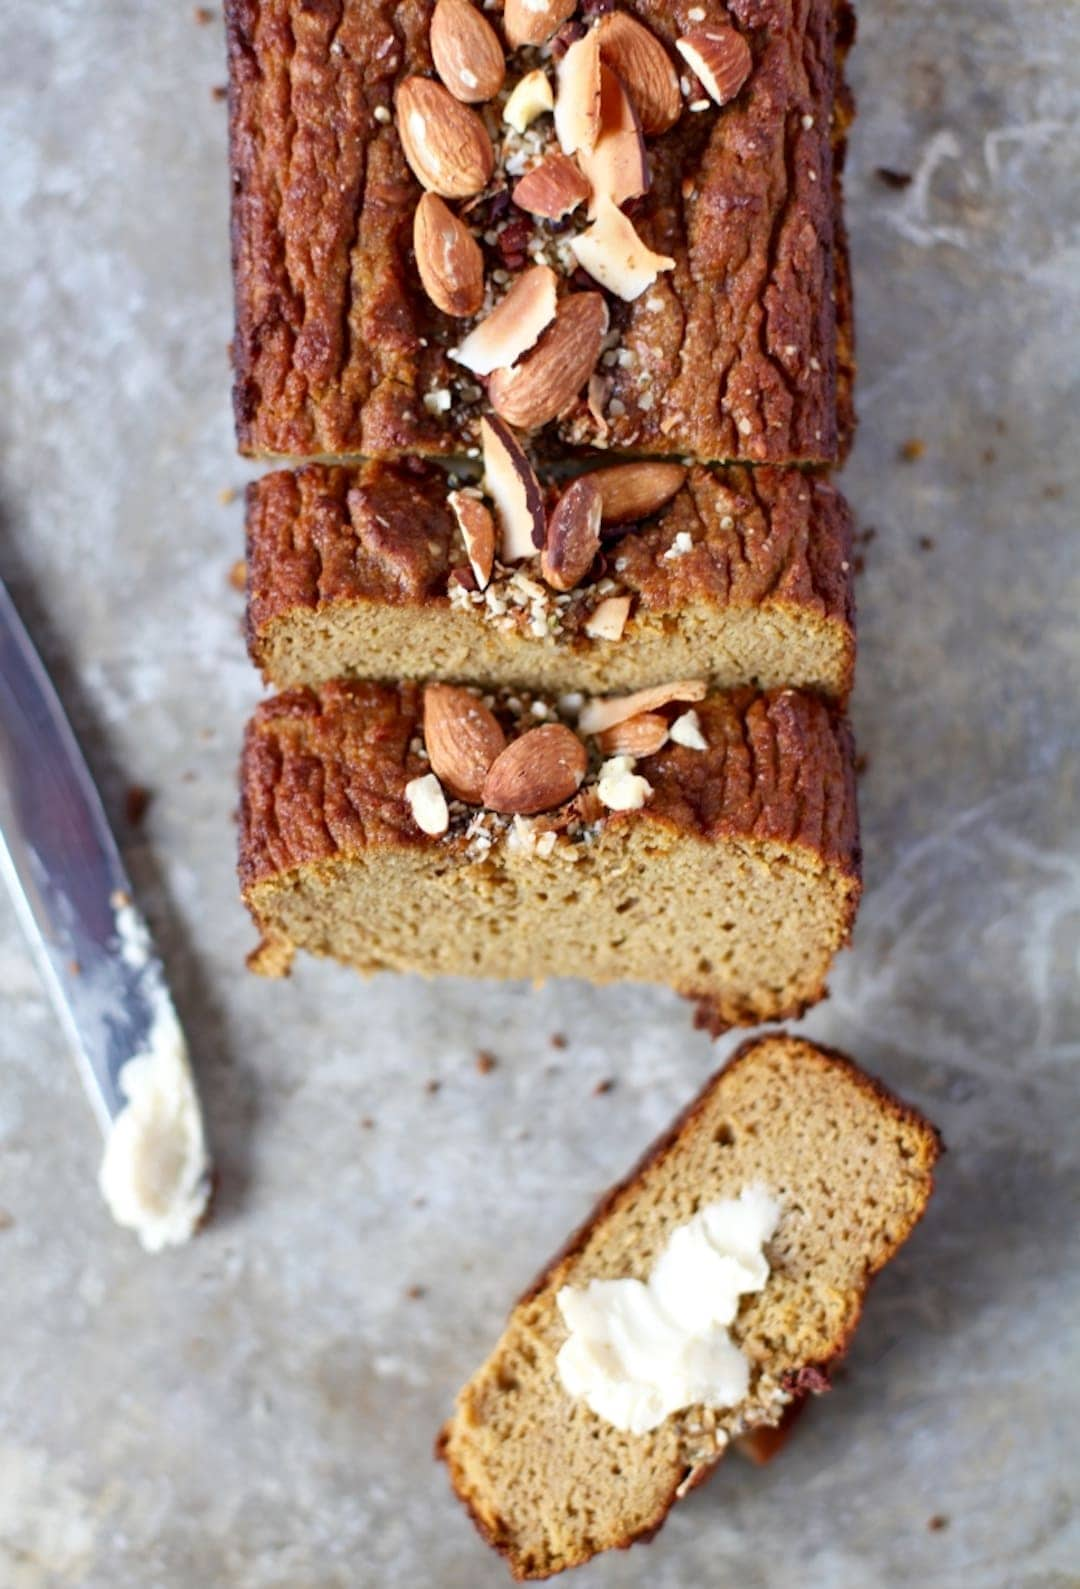 10 Terrific & Simple Healthy Fall Recipes - Healthy Gluten Free Pumpkin Pie Loaf